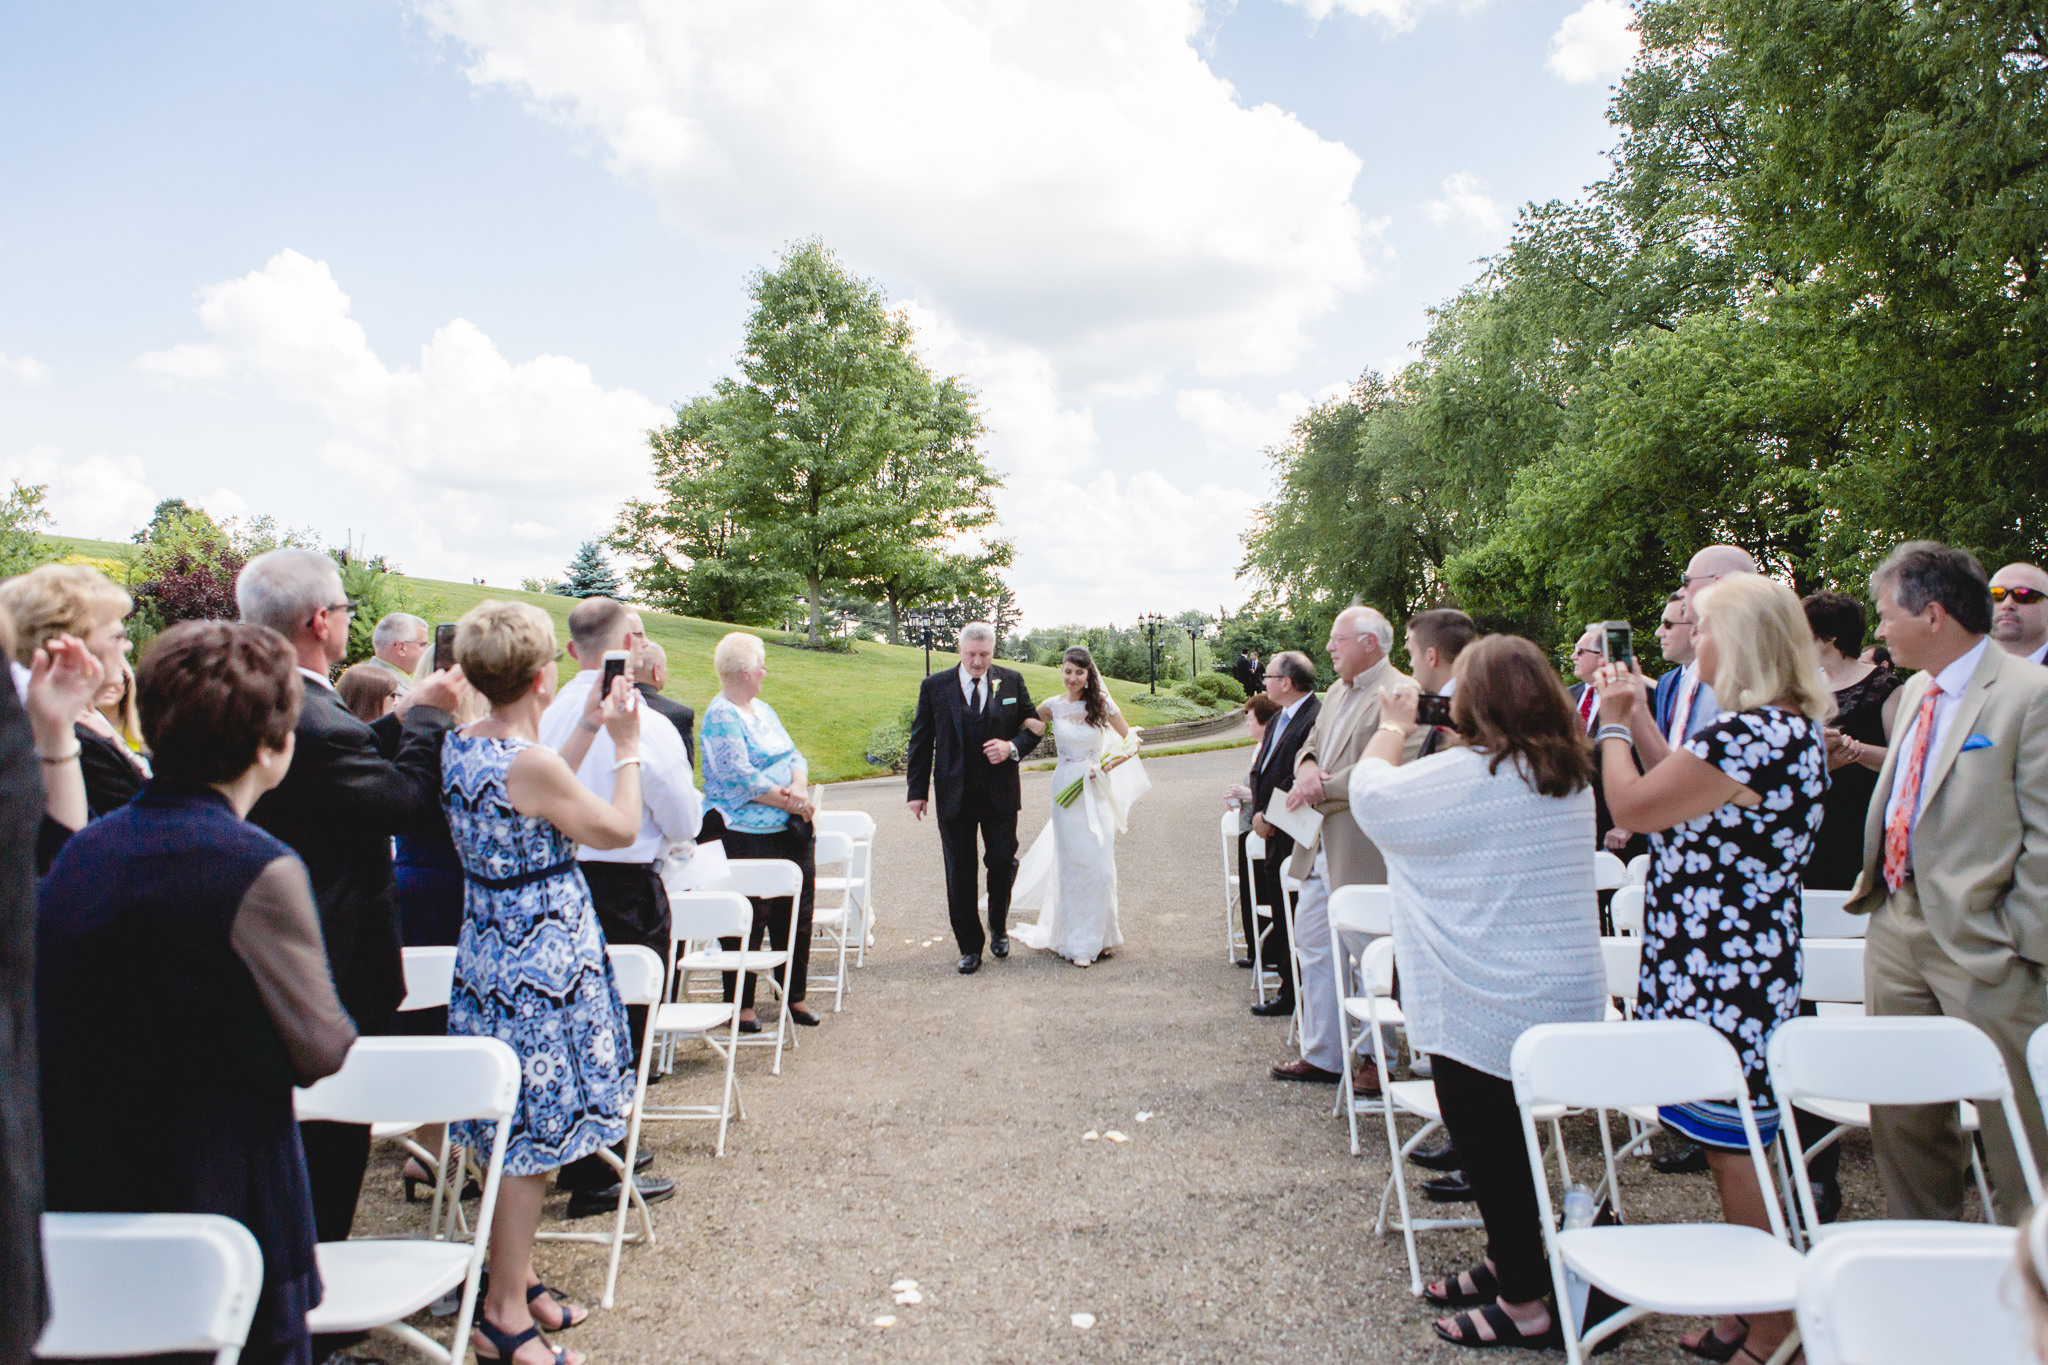 Bride walks down the aisle with her father at an outdoor wedding ceremony at Greystone Fields